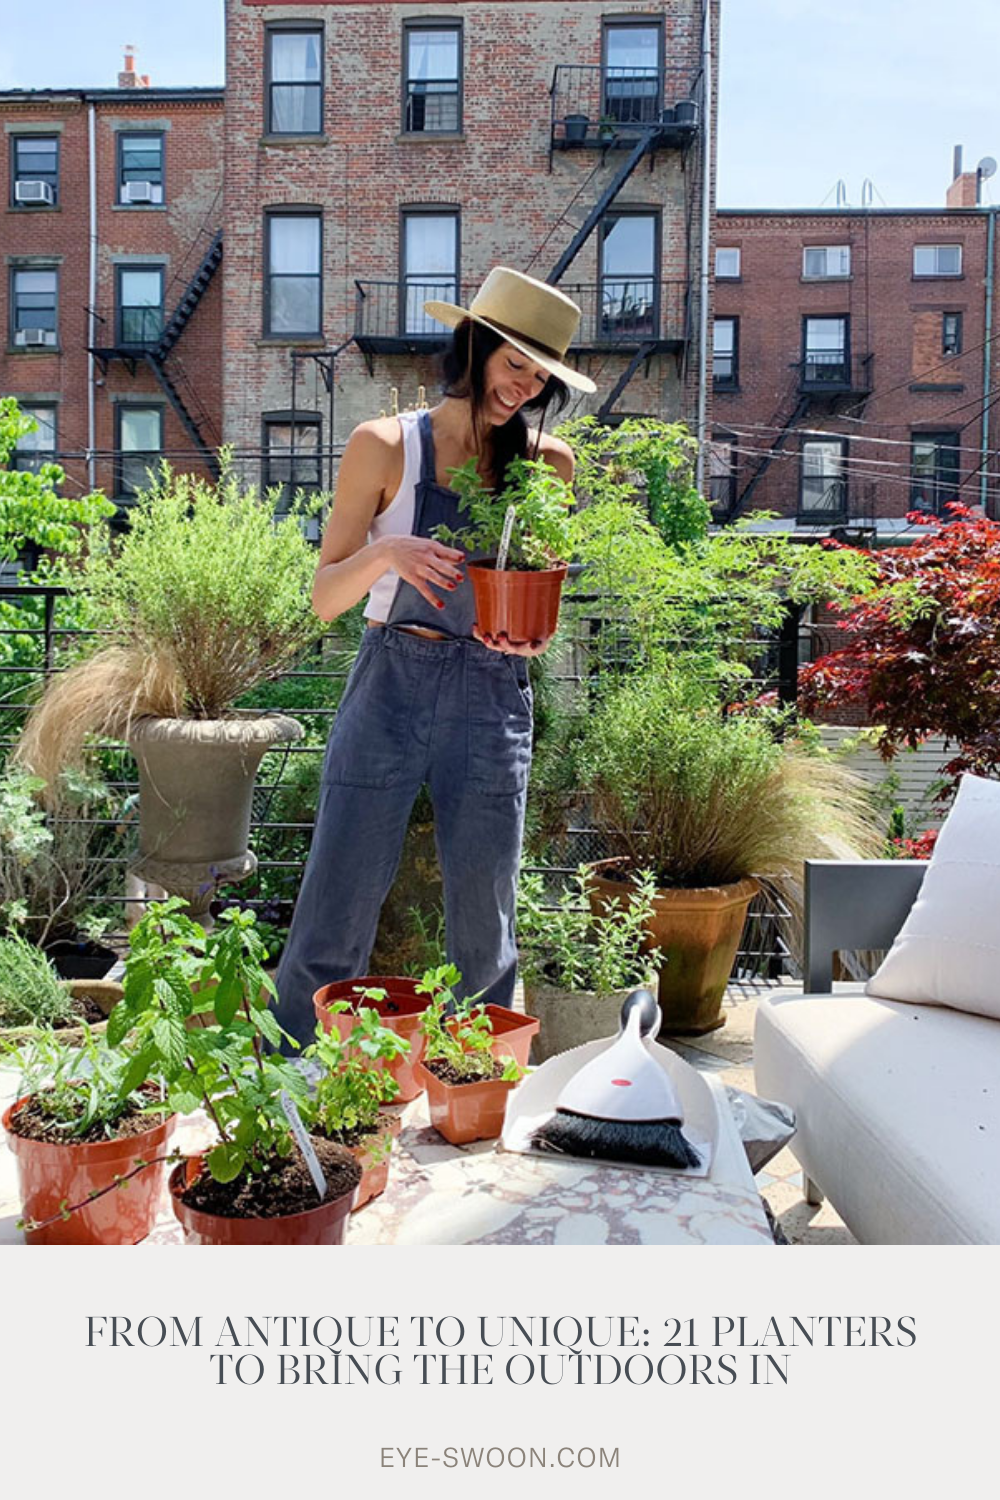 21 Of The Best Planters To Bring Mother Nature Indoors In 2021 Eyeswoon Athena Calderone Terrace Garden Design